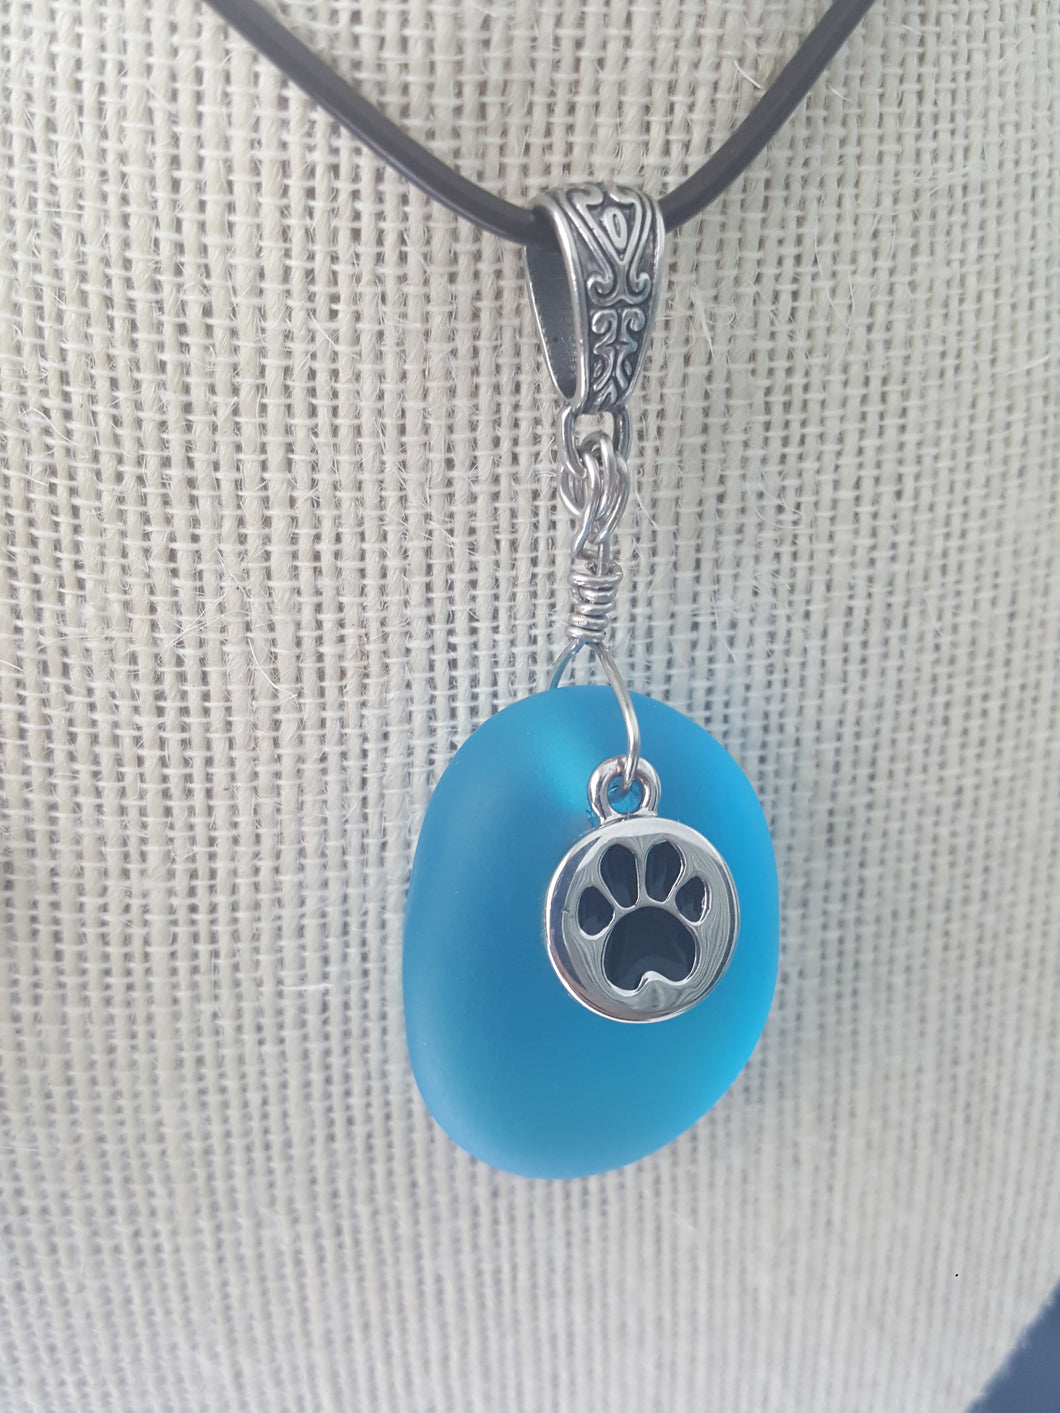 Turquoise Seaglass Pendant With Silver Fur Friend Paw Print Charm and Hand Wire Wrap